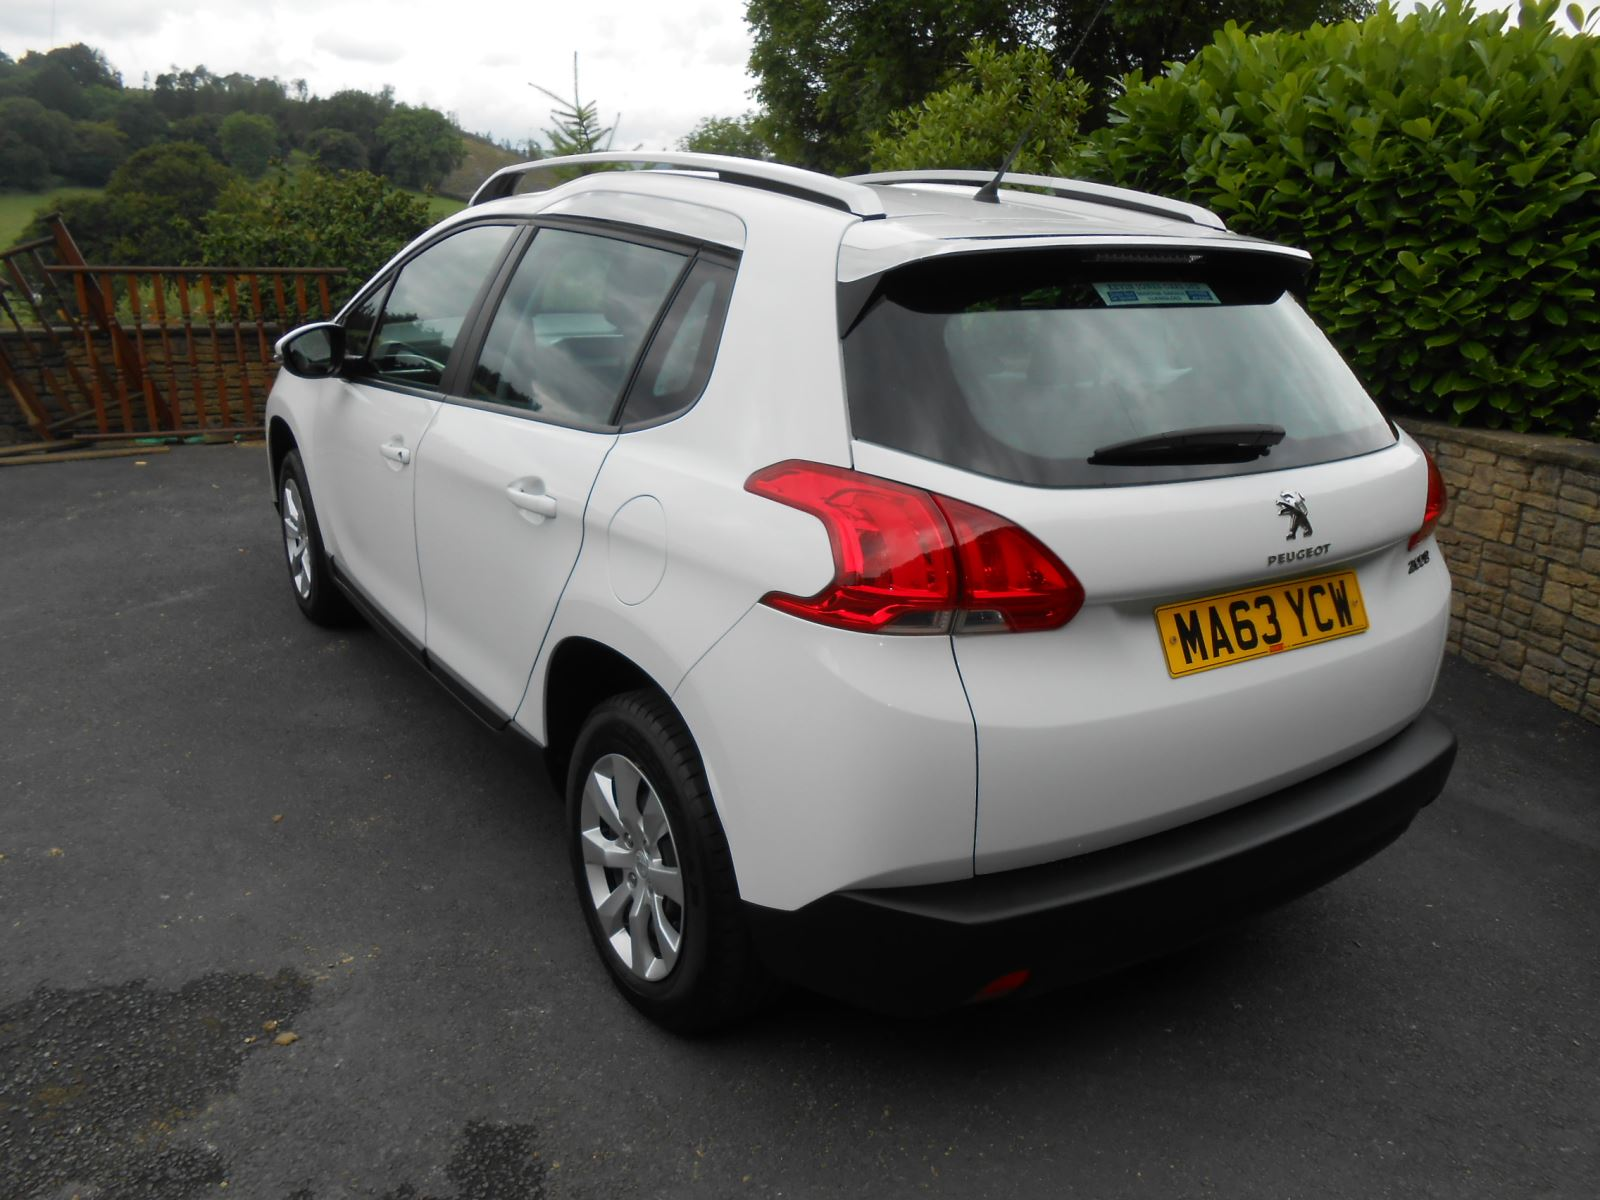 peugeot 2008 1 2 access plus 5 door car for sale llanidloes powys mid wales kevin jones cars. Black Bedroom Furniture Sets. Home Design Ideas